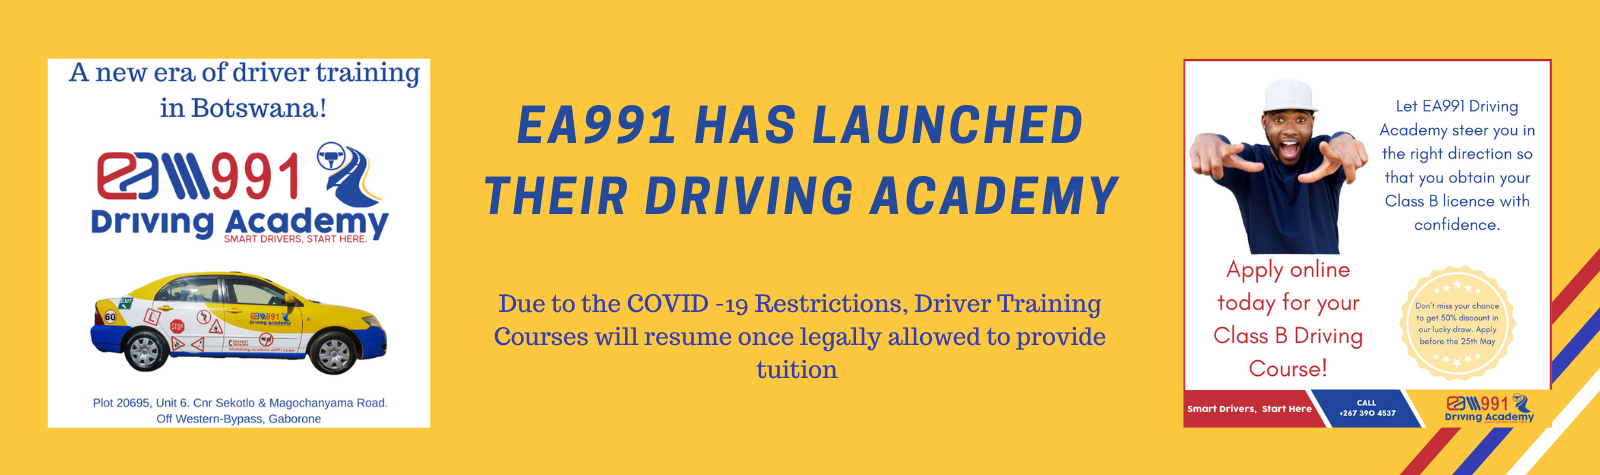 EA991 has launched driver training in Botswana